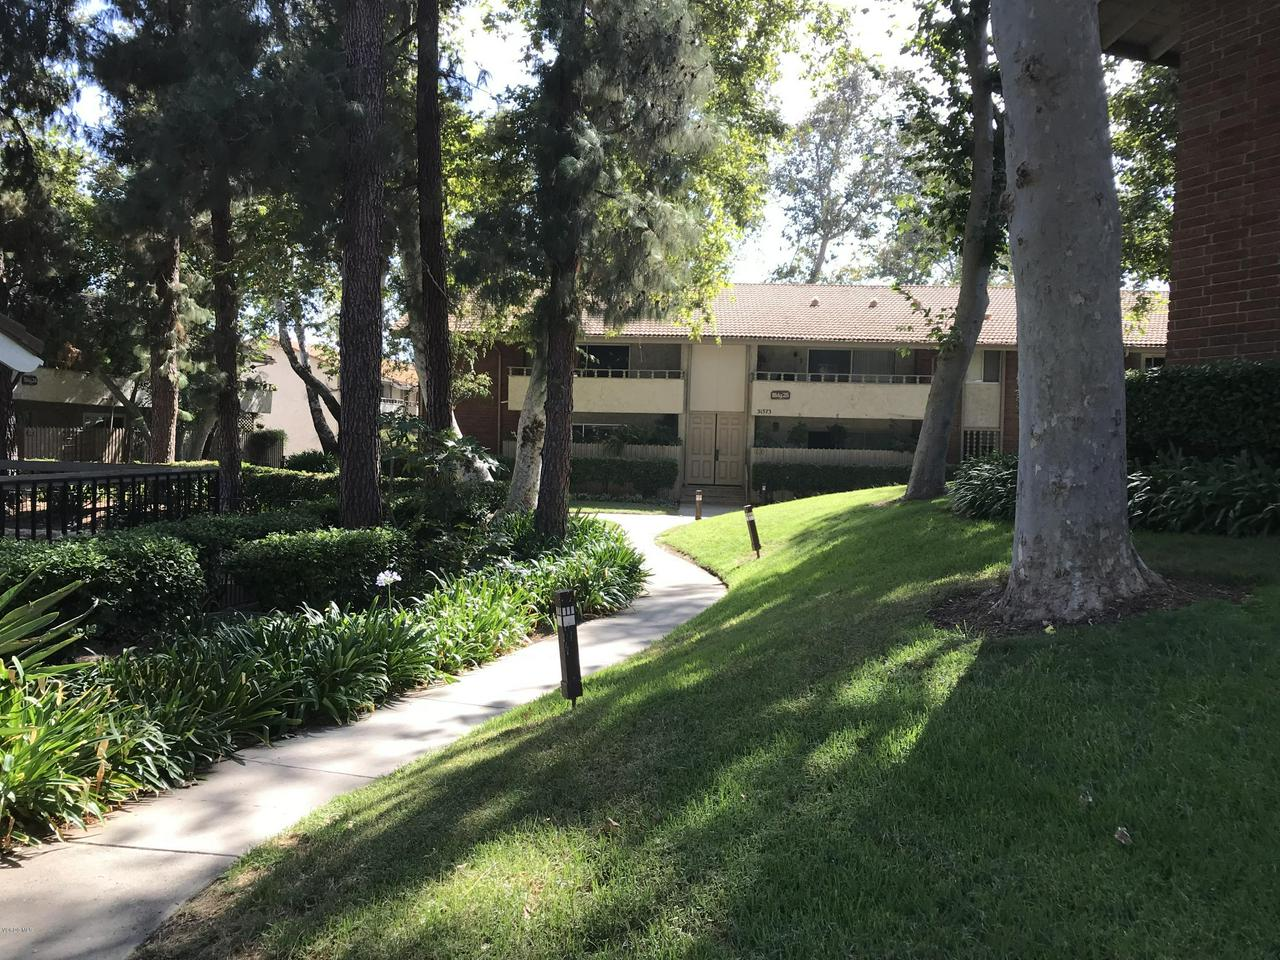 Photo of 31573 LINDERO CANYON ROAD #4, Westlake Village, CA 91361